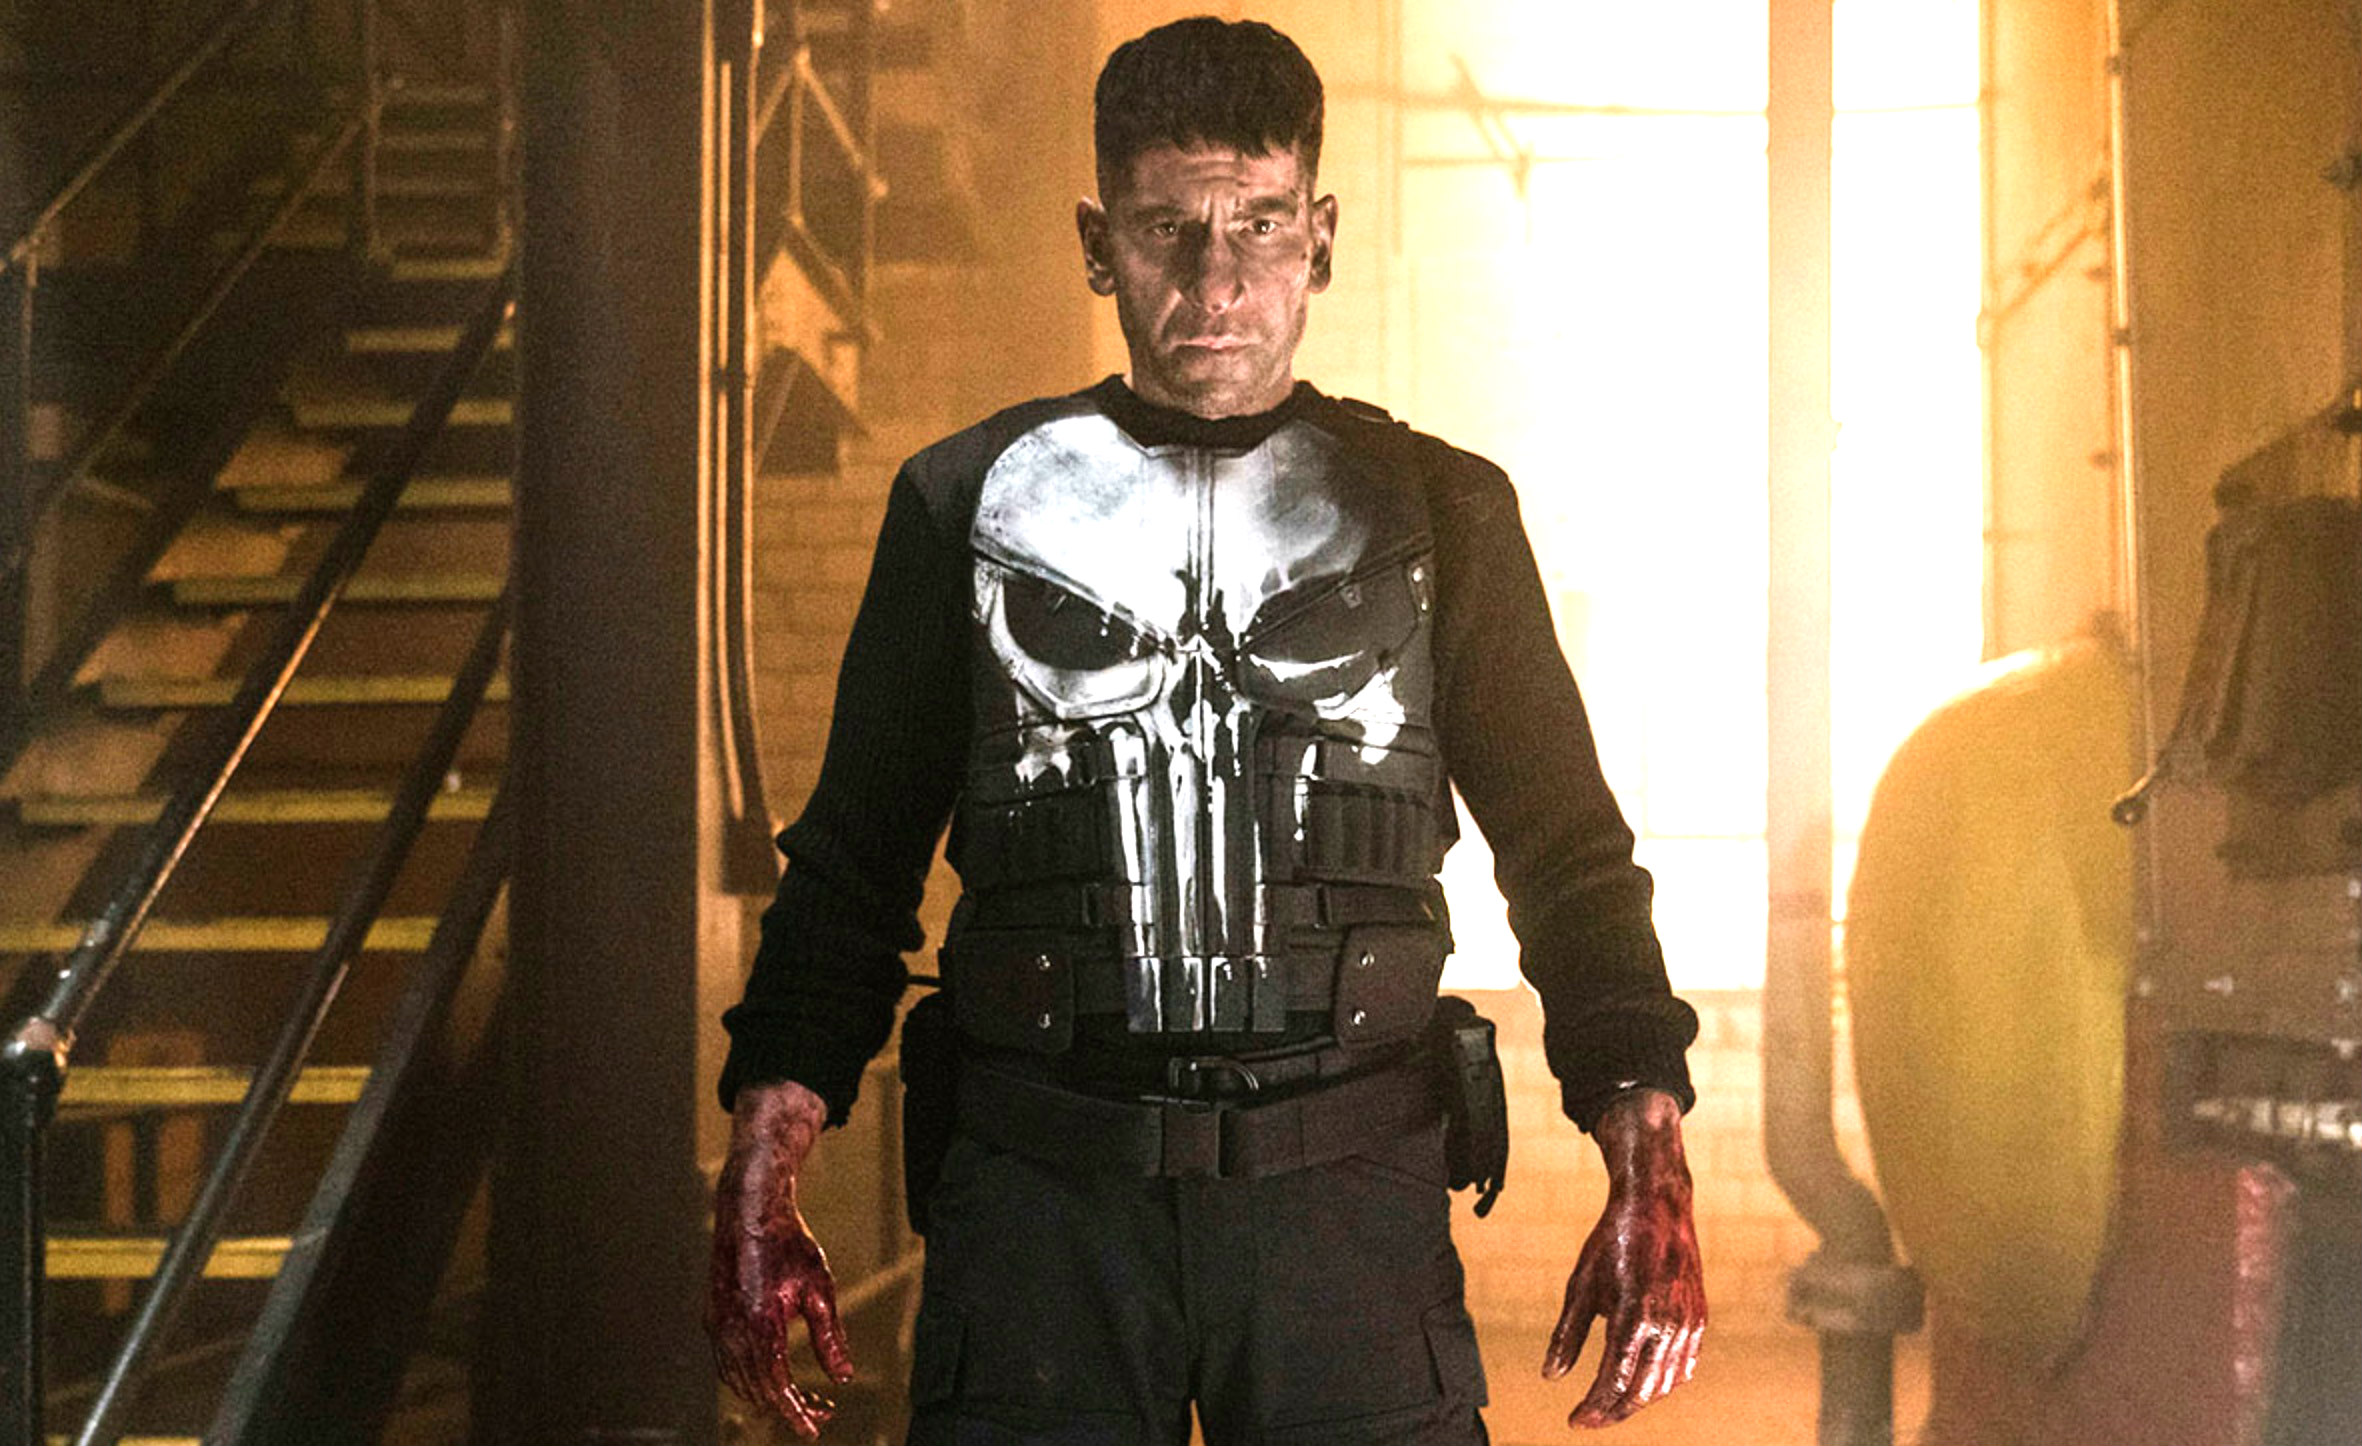 The Punisher Star Had Hilarious Response To Being Cut Off While Driving